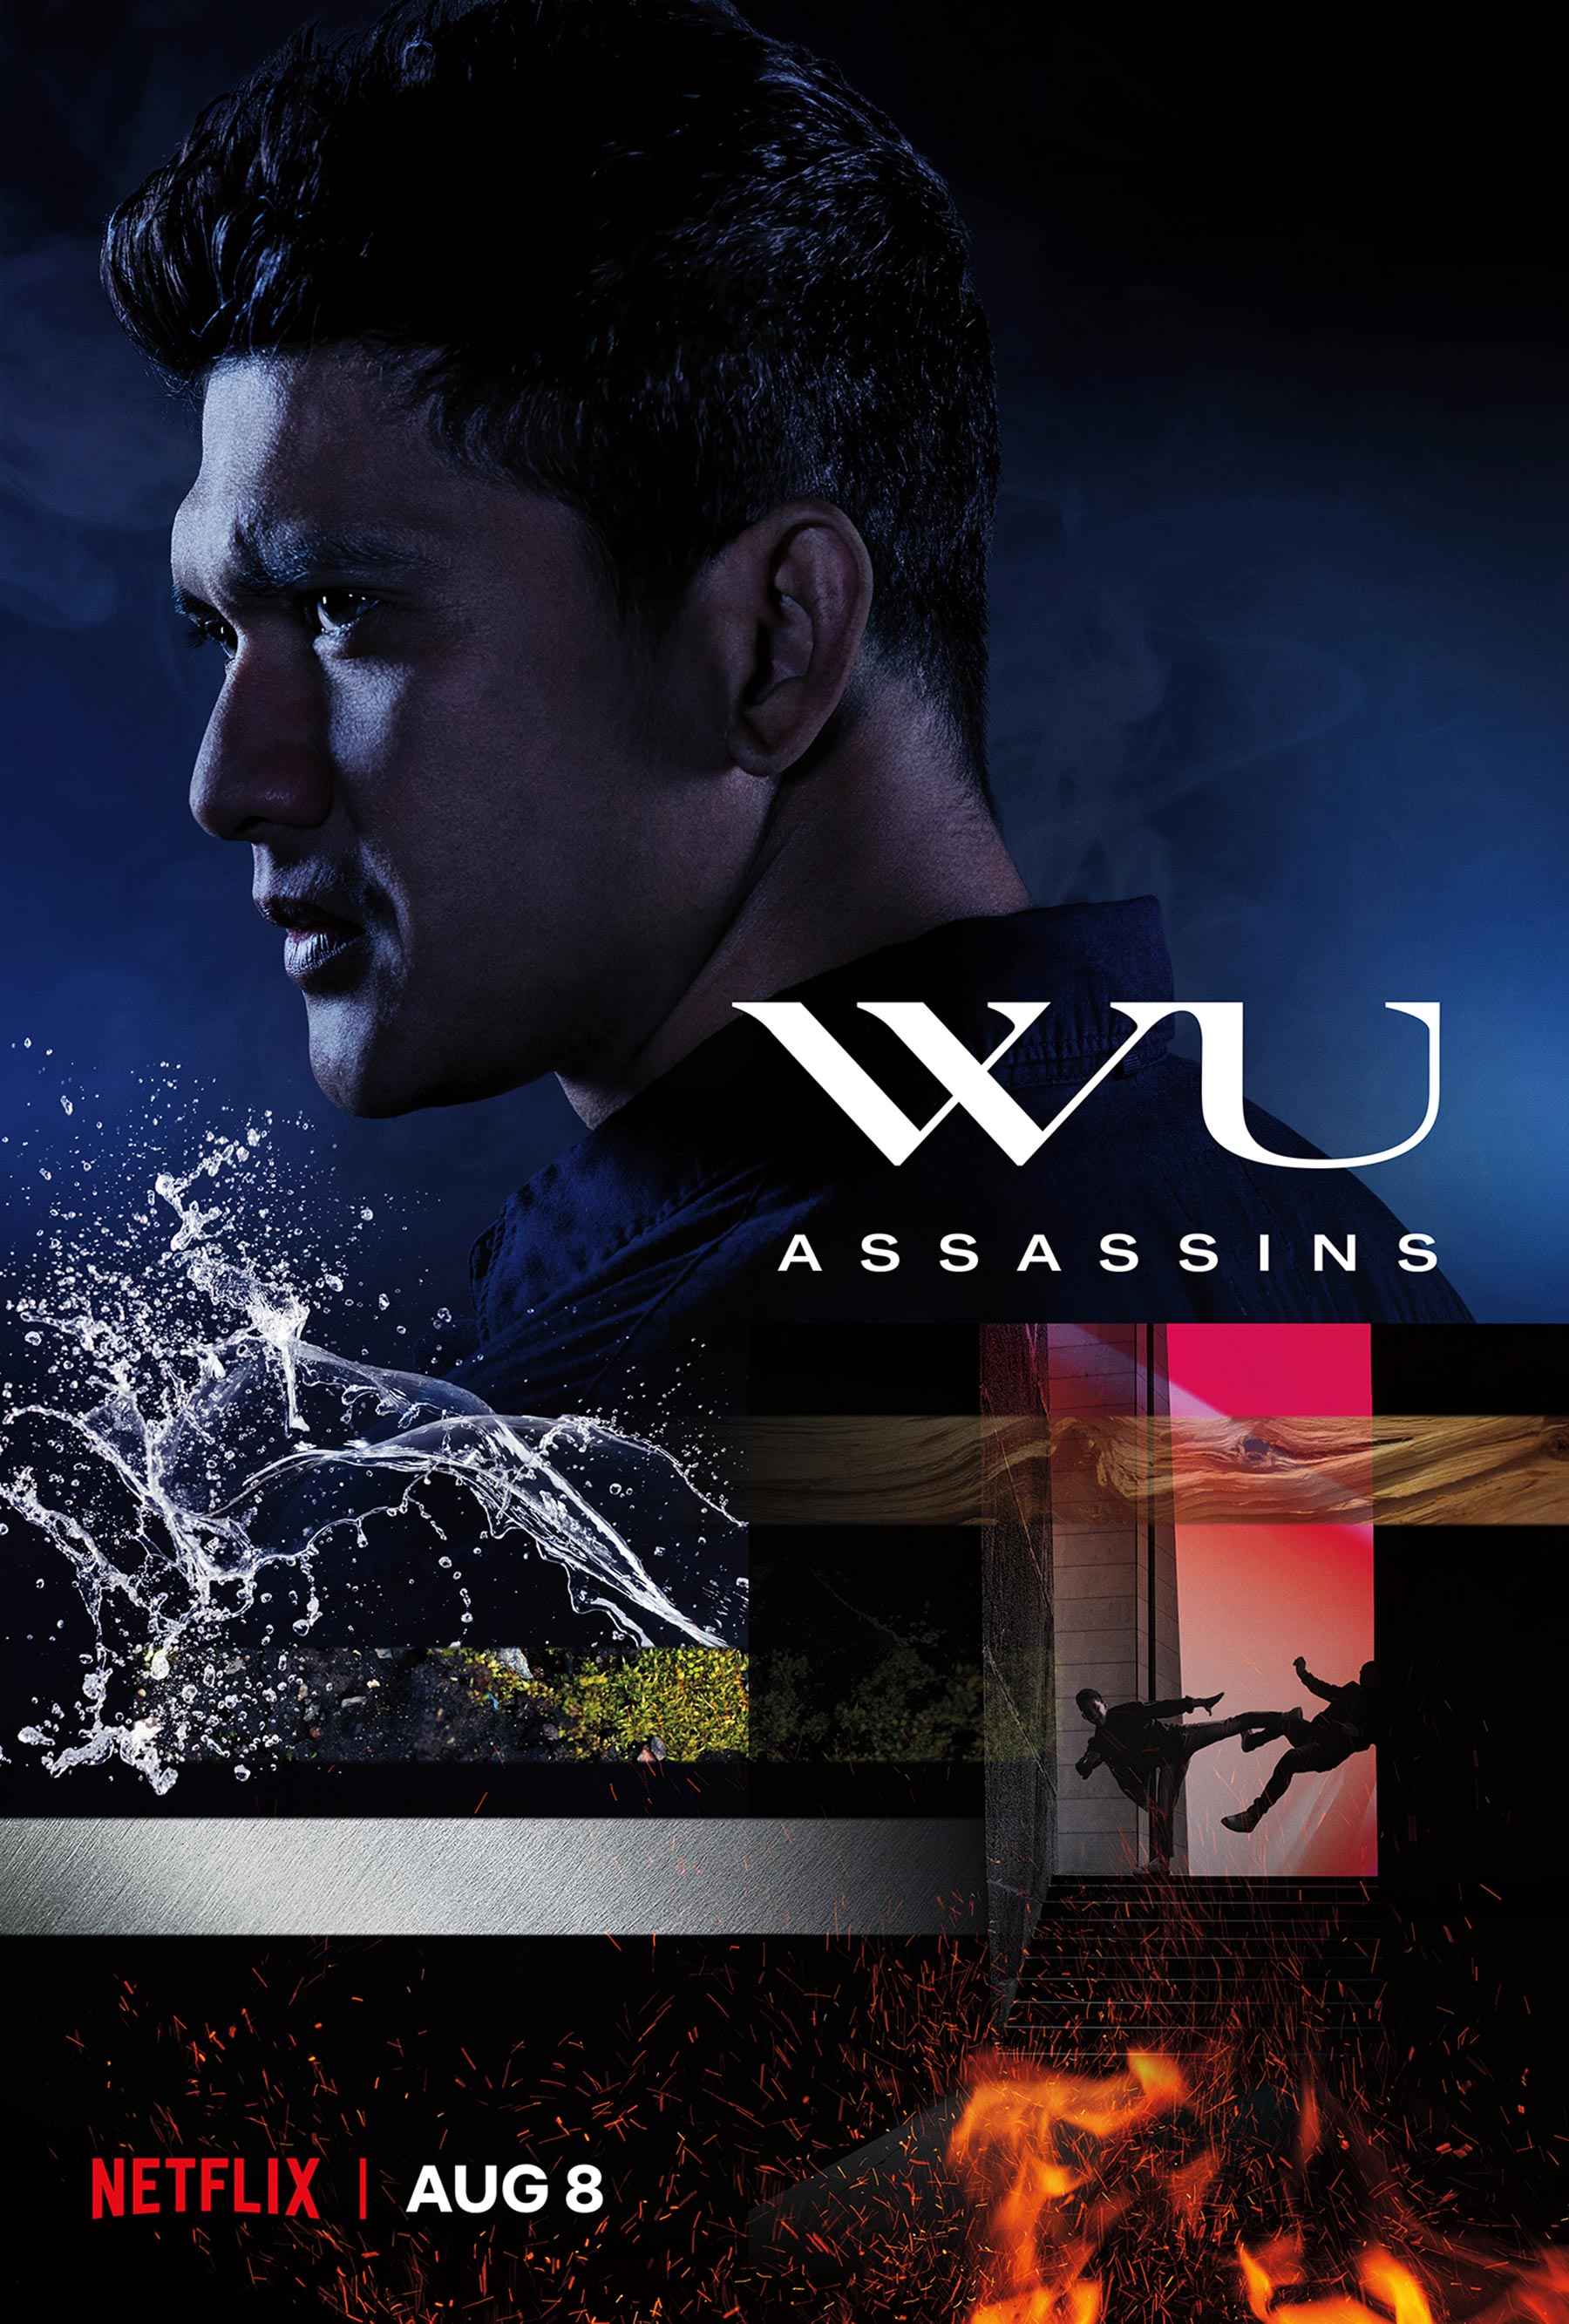 Wu Assassins Poster.jpg